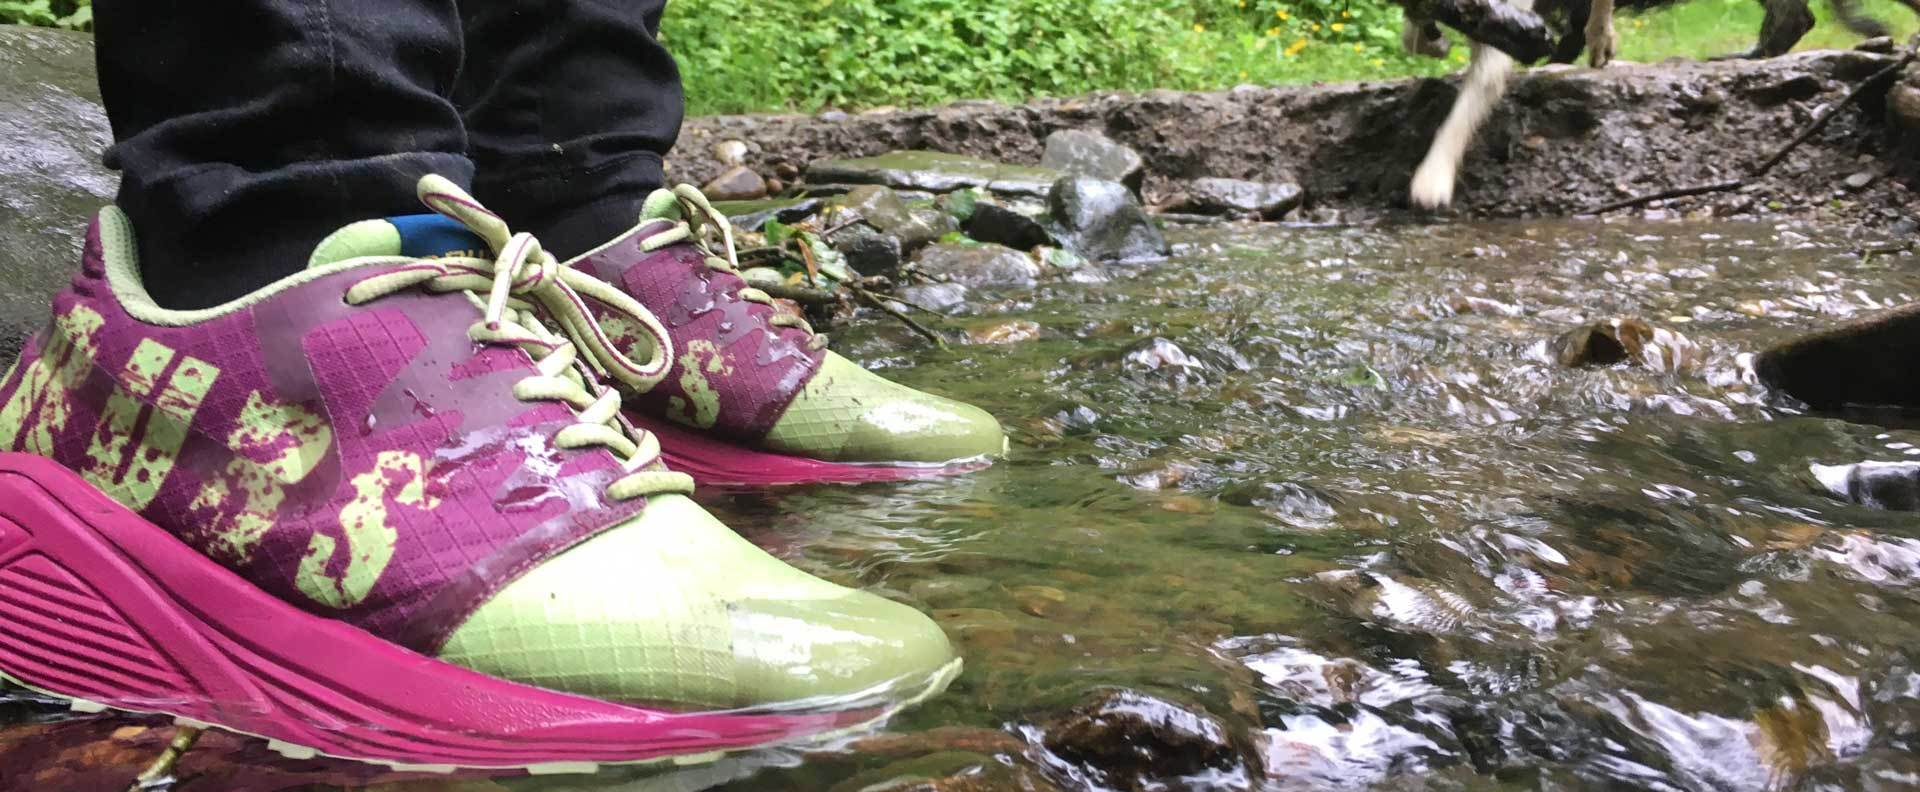 Grubs Hiking Shoes